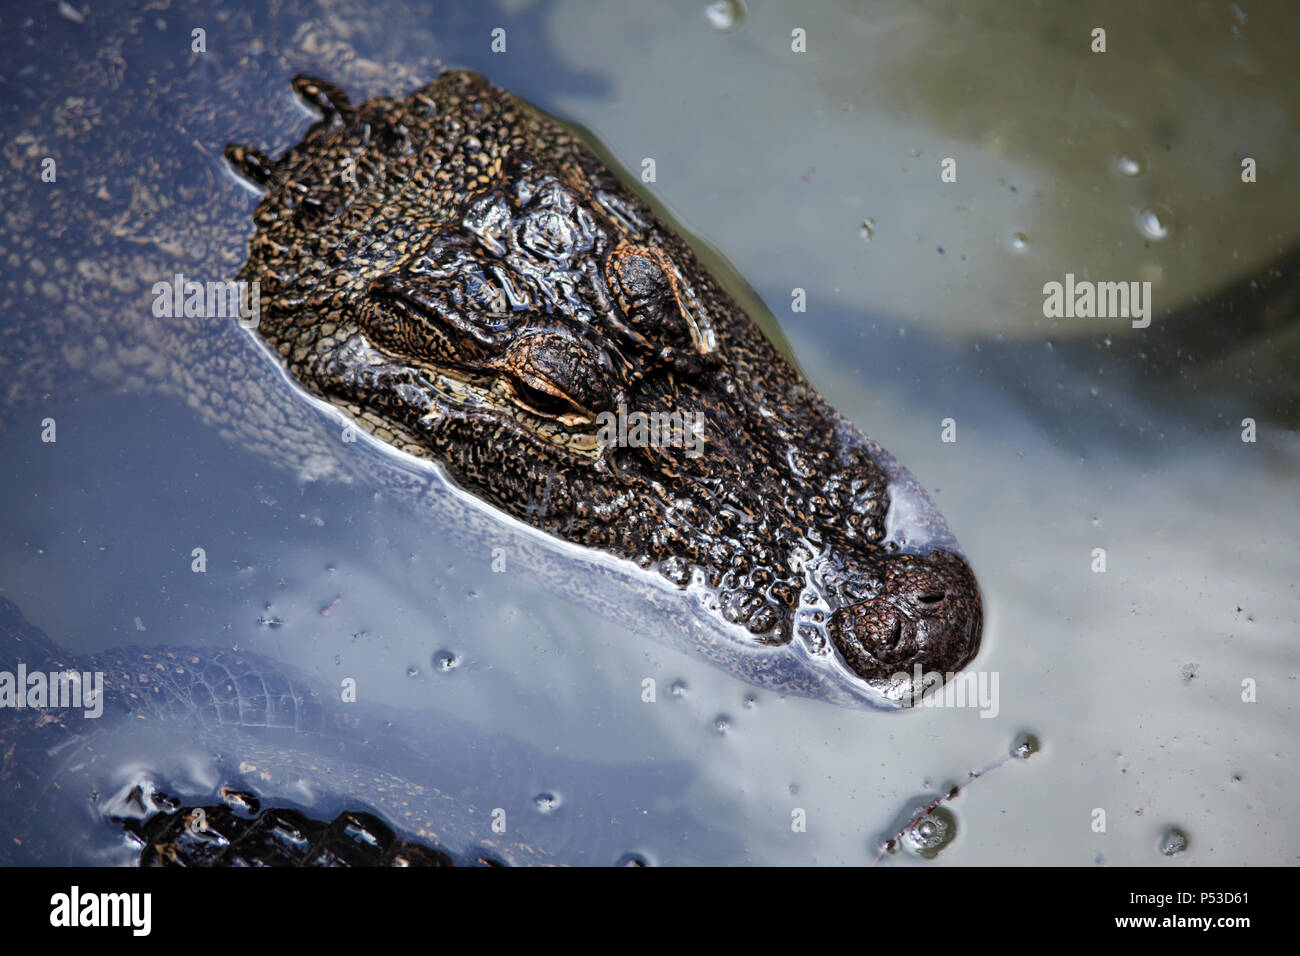 Close up shot of alligator floating on water - Stock Image